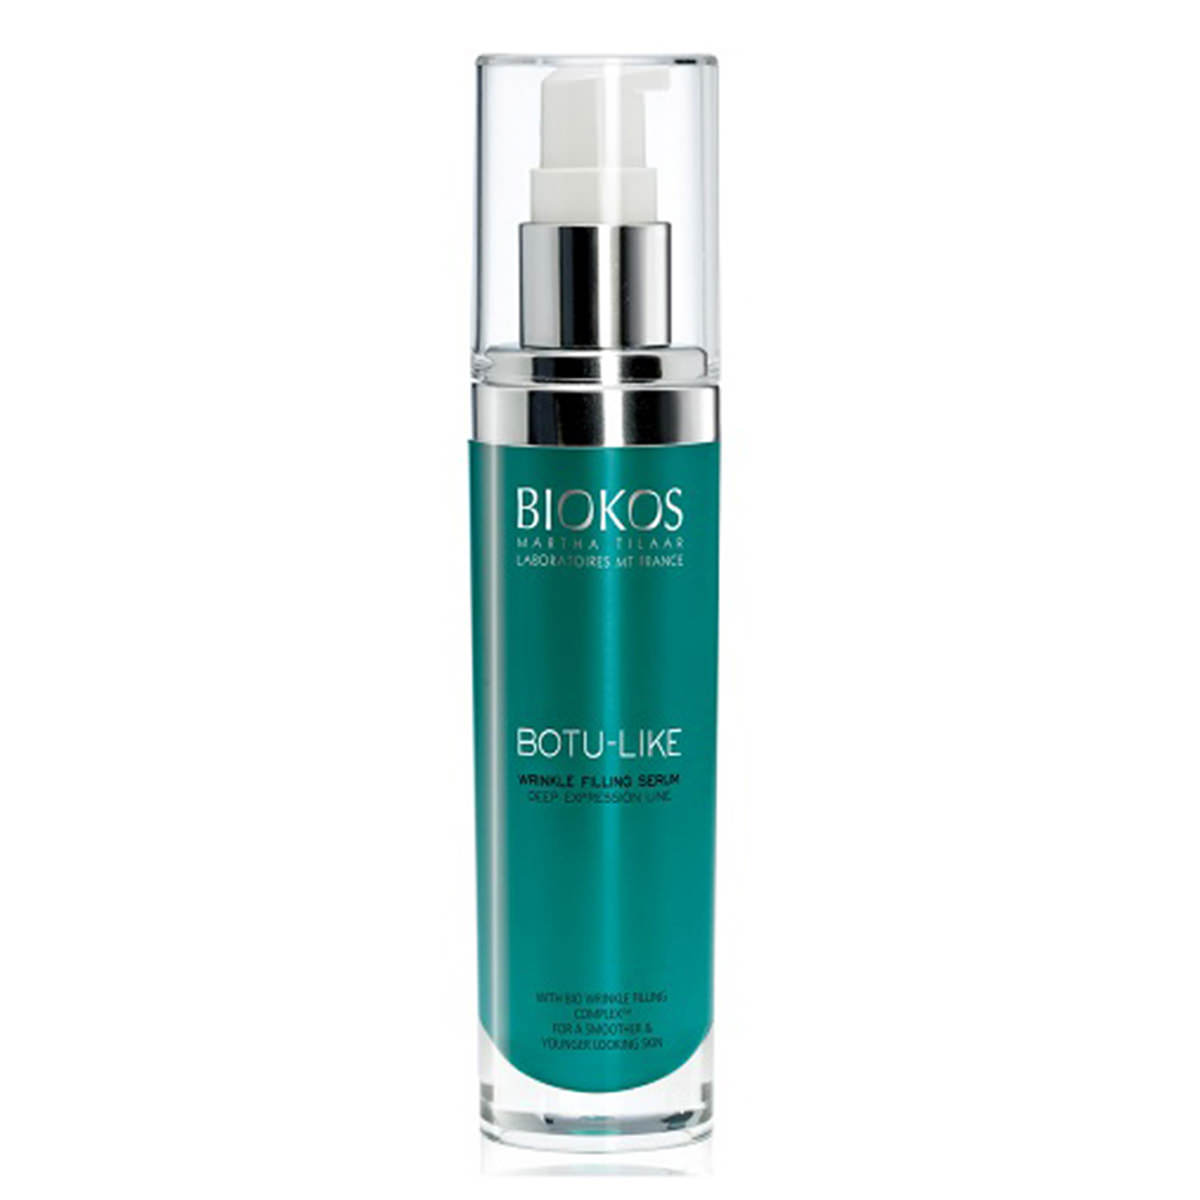 Biokos---Botu-Like-Wrinkle-Filling-Serum-sfw(1)